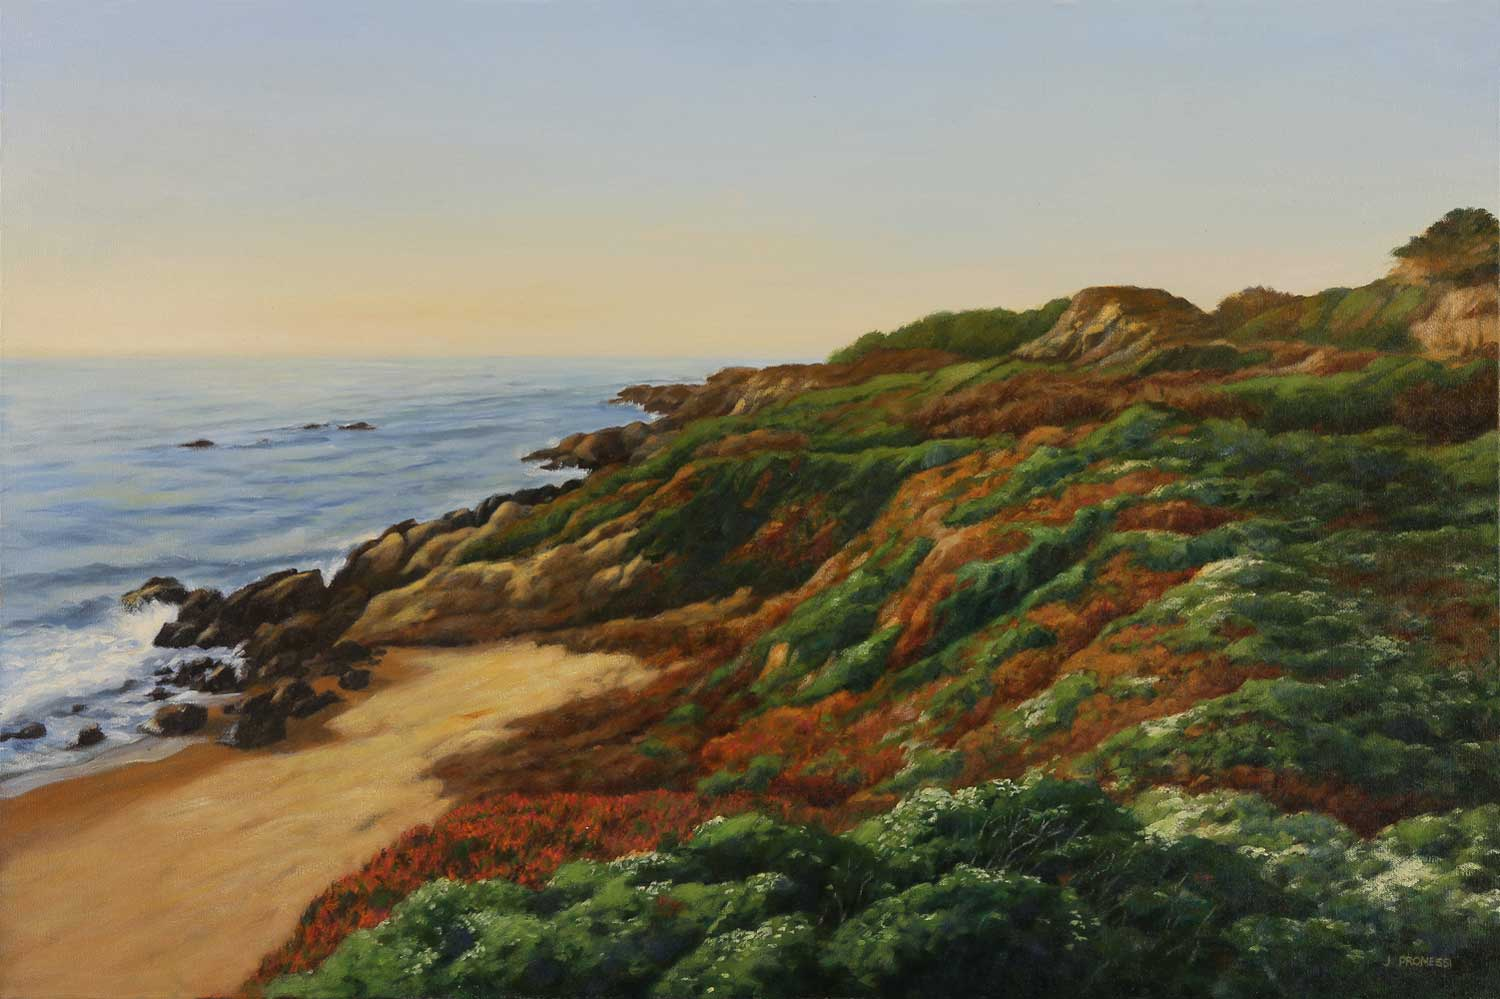 Ice Plant, Seascape painting by Jim Promessi